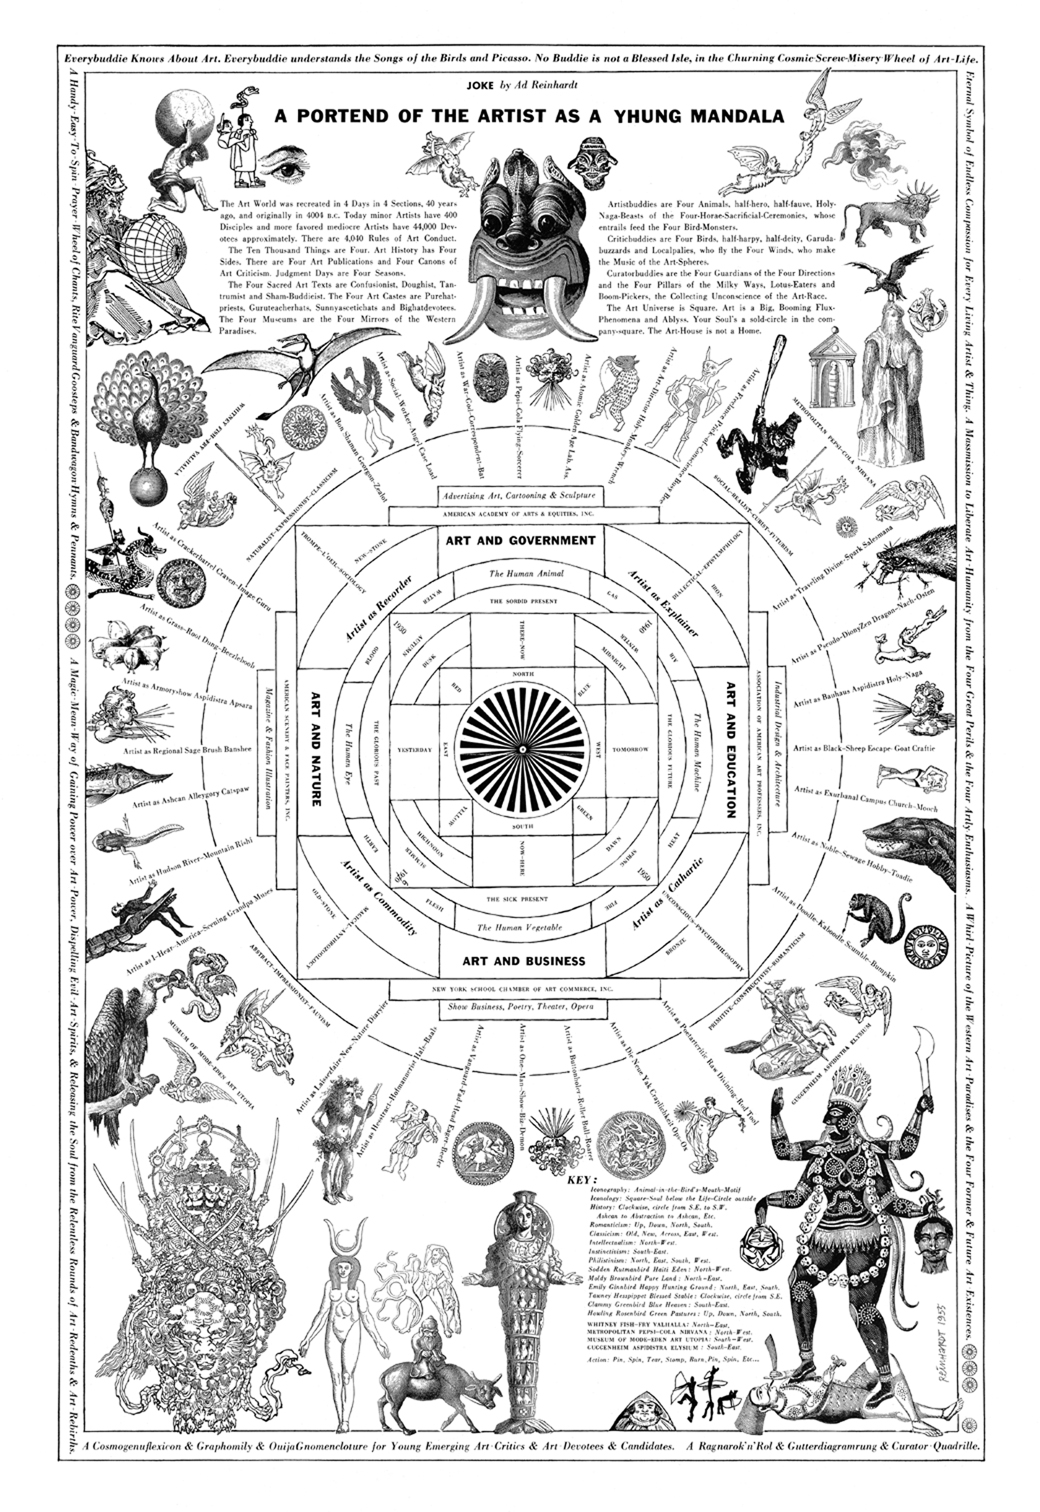 A Portend of the Artist as a Yhung Mandala, ARTnews, May 1956. ©2013 ESTATE OF AD REINHARDT / ARTISTS RIGHTS SOCIETY (ARS), NEW YORK.